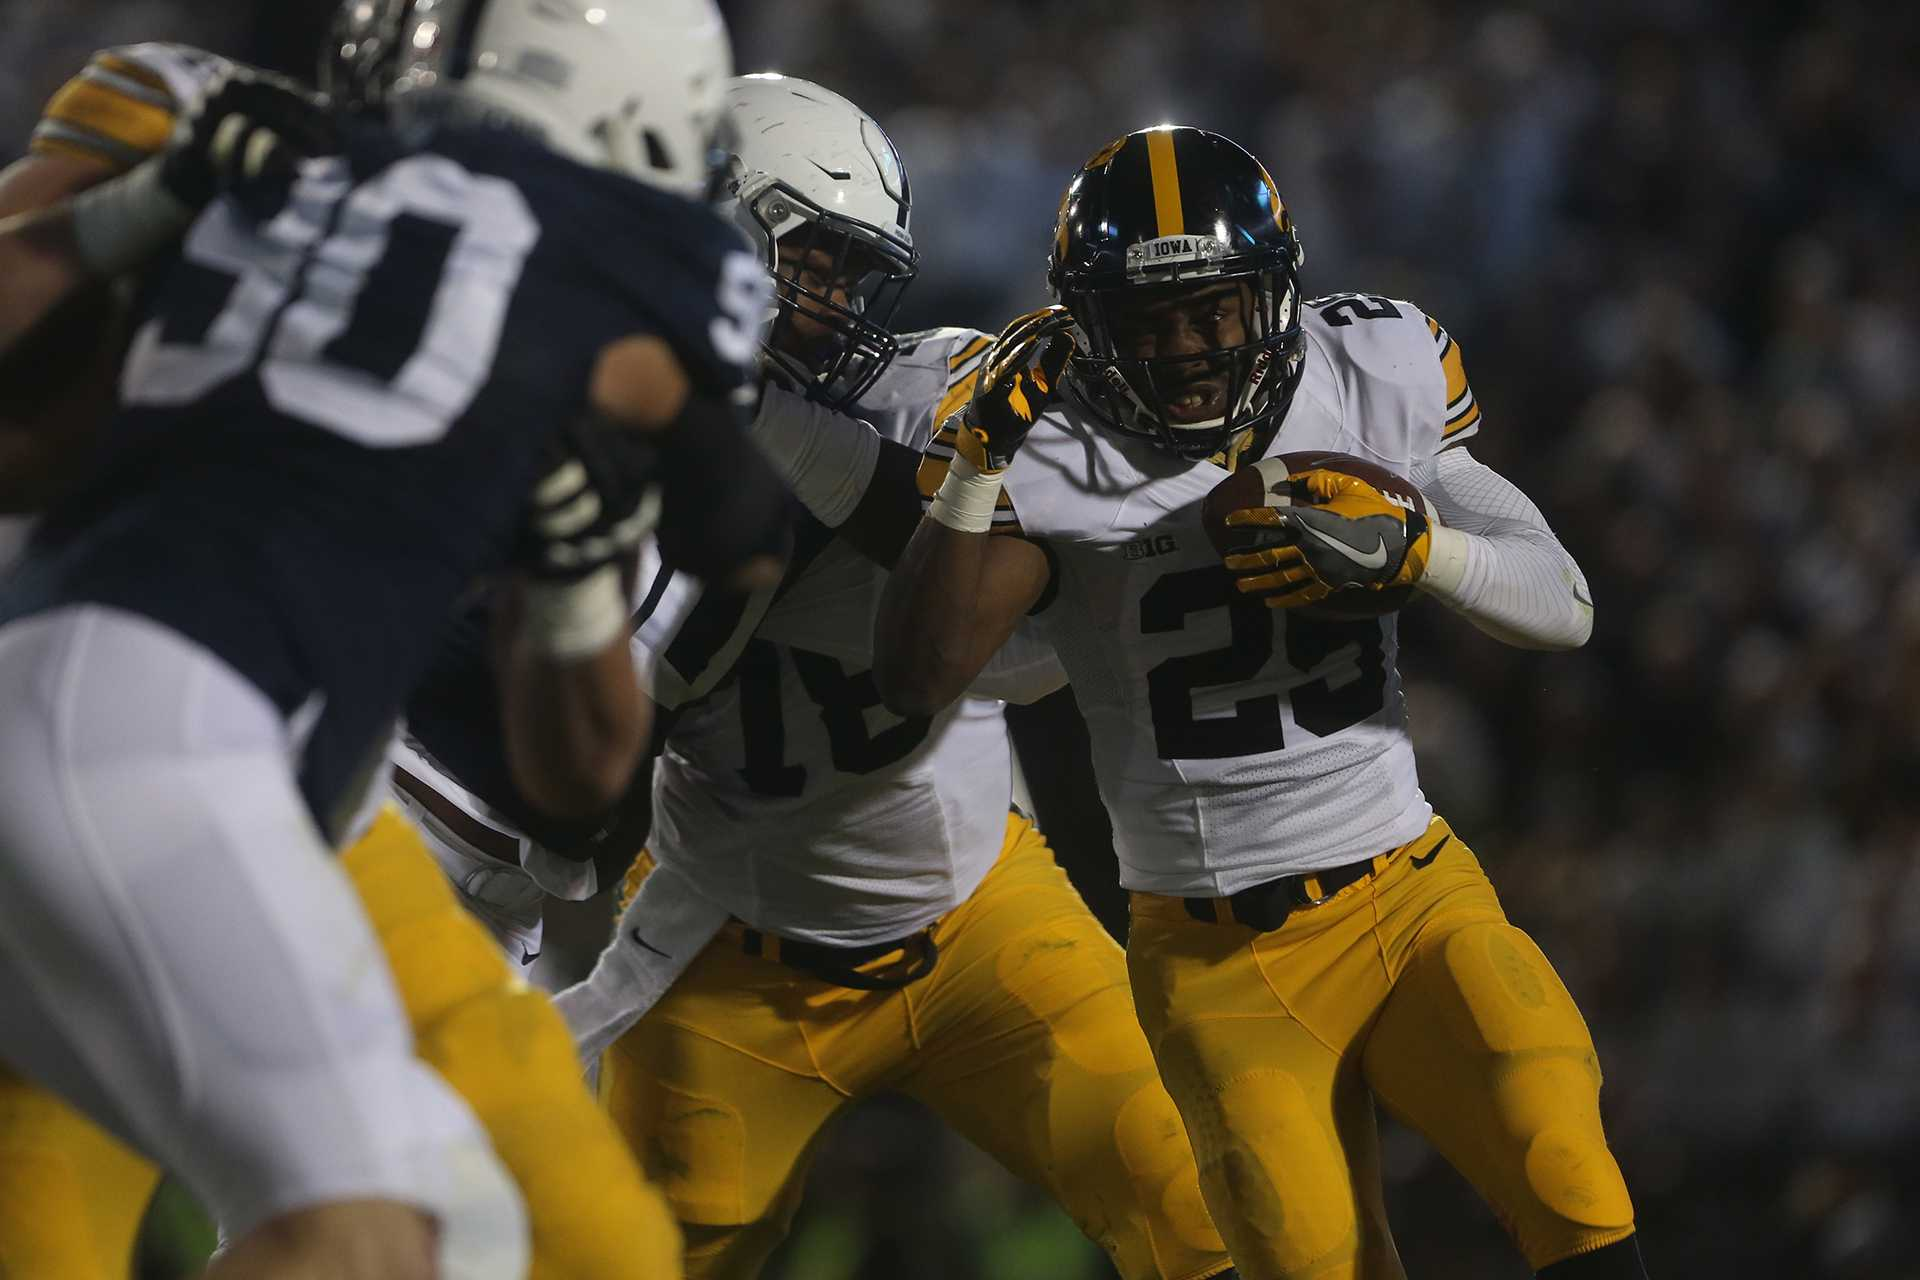 Iowa running back Akrum Wadley attempts to avoid Penn State defenders during the Iowa-Penn State game in Beaver Stadium in College State on Saturday, Nov. 5, 2016. The Nittany Lions defeated the Hawkeyes, 41-14. (The Daily Iowan/Margaret Kispert)